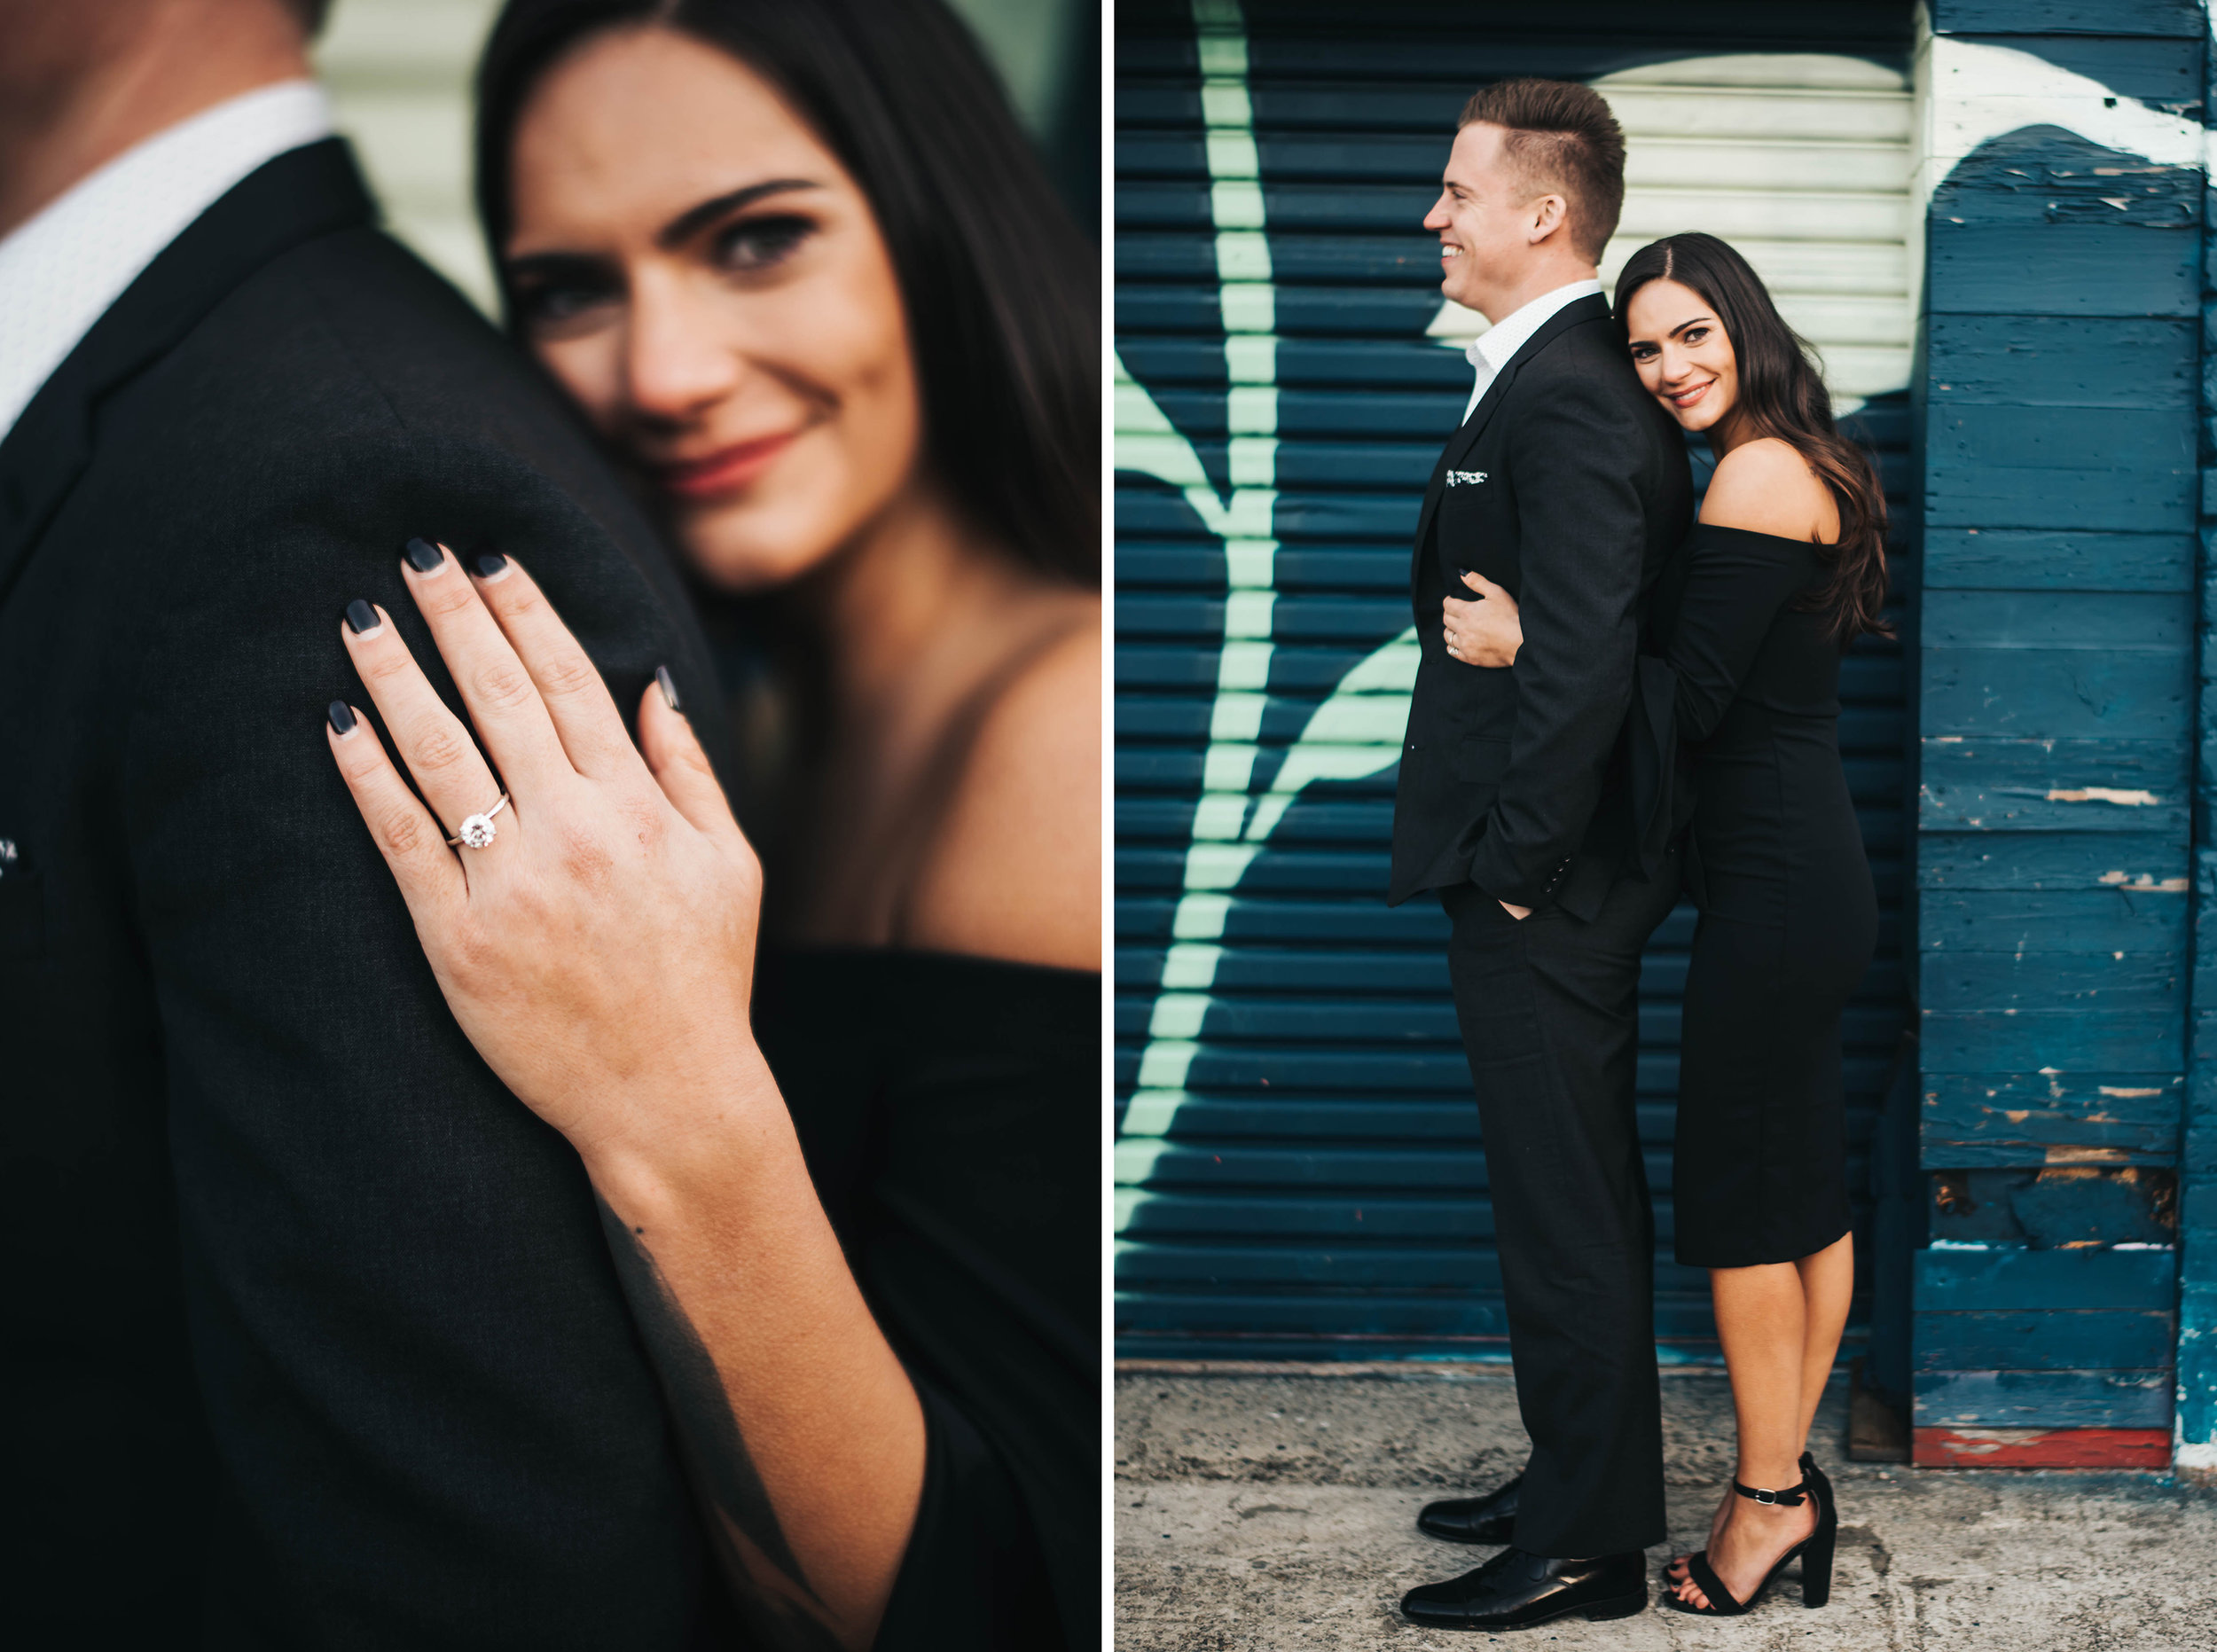 atlanta engagement wedding nontraditional photographer2.jpg